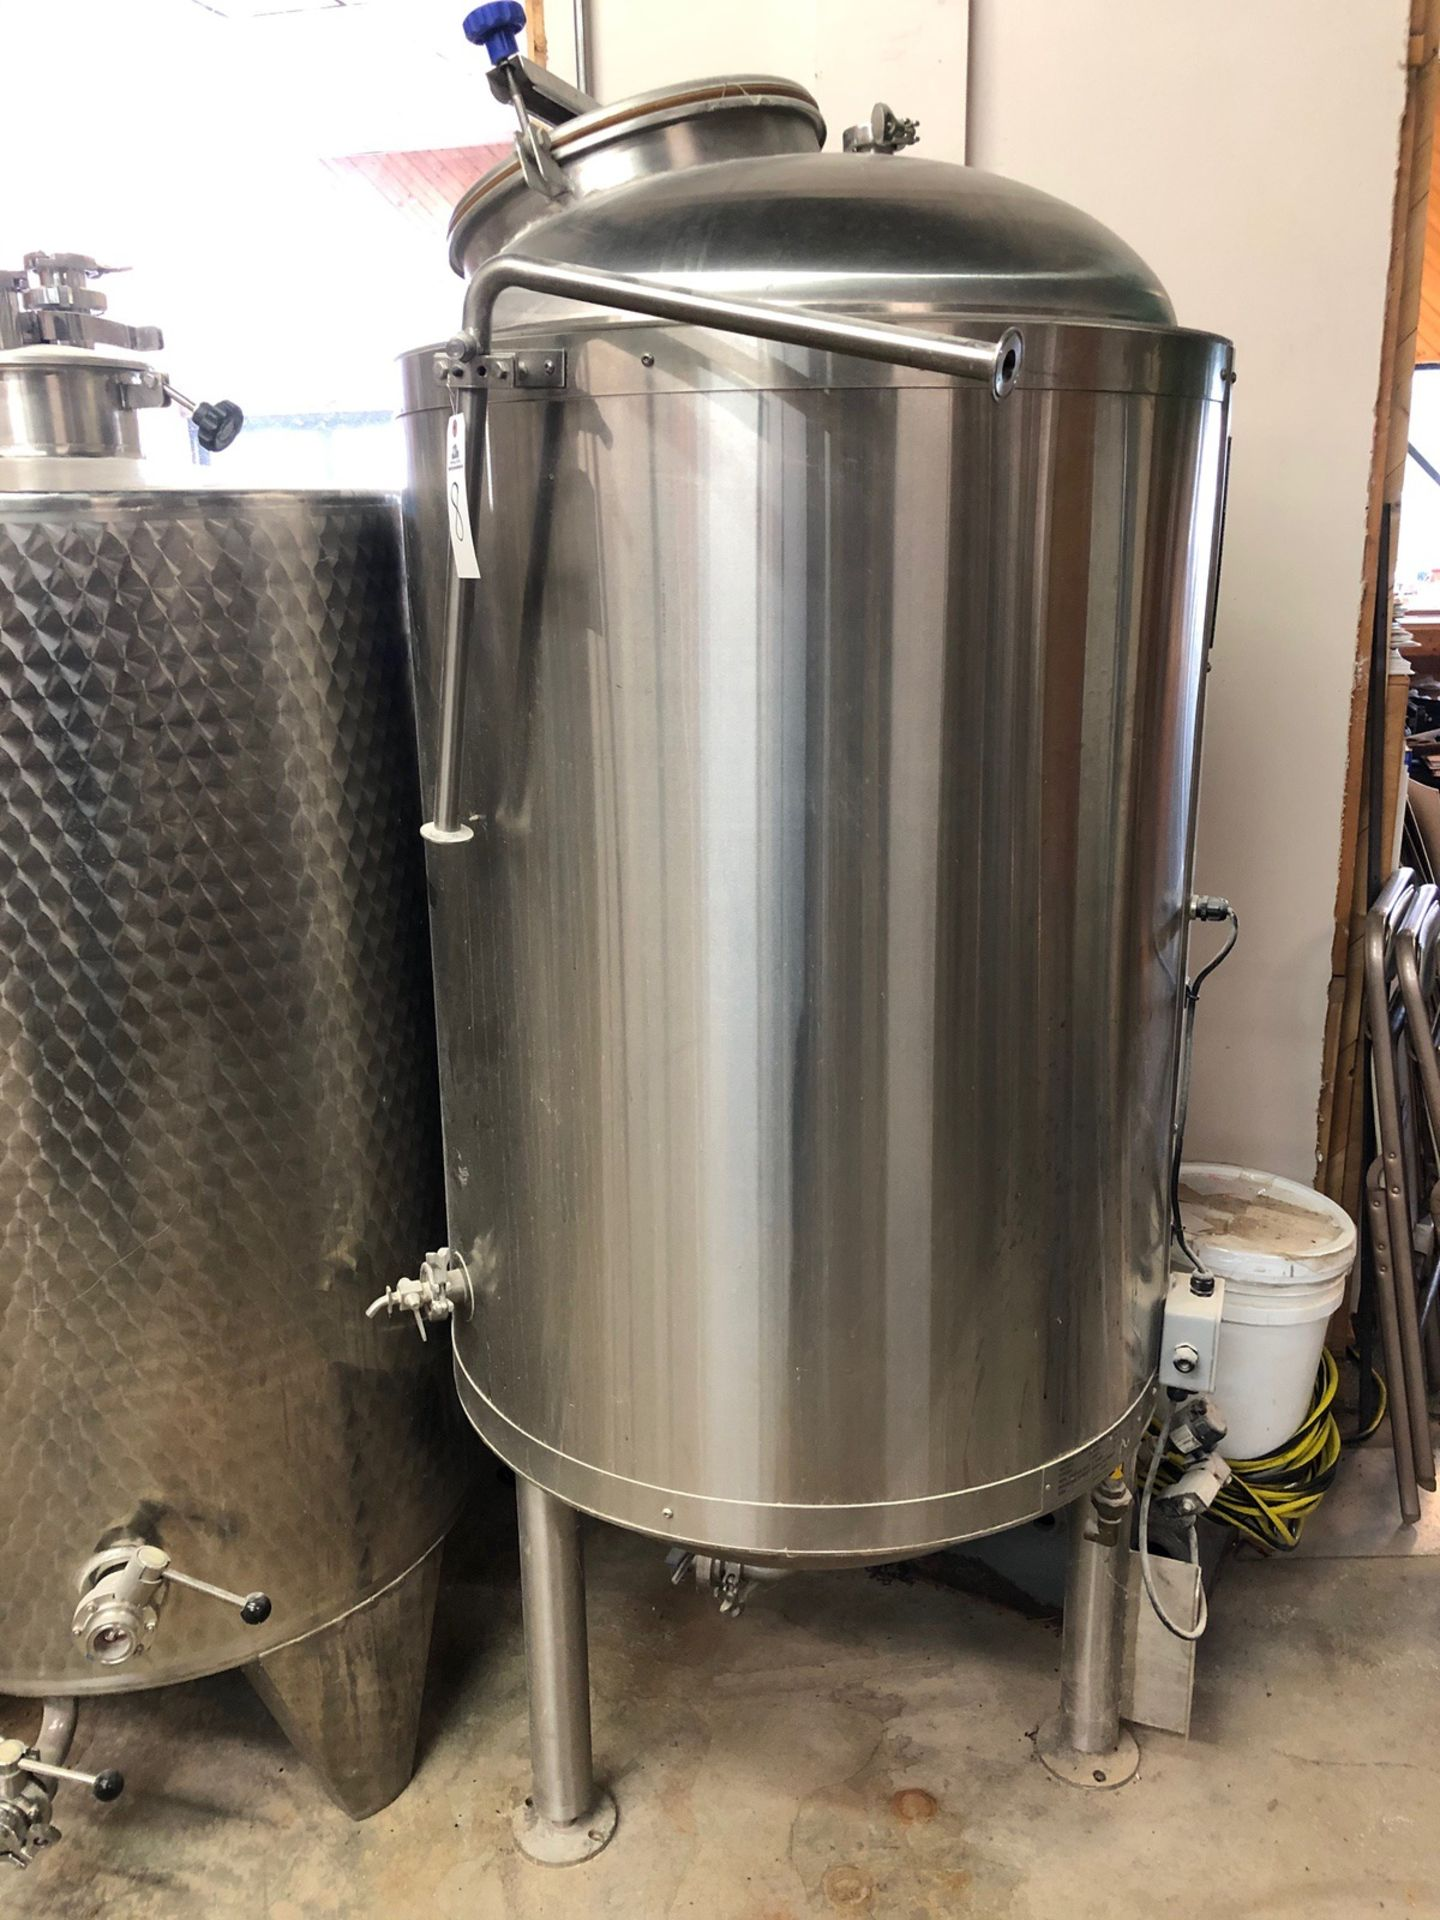 Lot 8 - 2008 Price-Schonstrom Stainless Steel Jacketed Tank, MAWP of Jacket: | Sub to Bulk | Rig Fee: $200